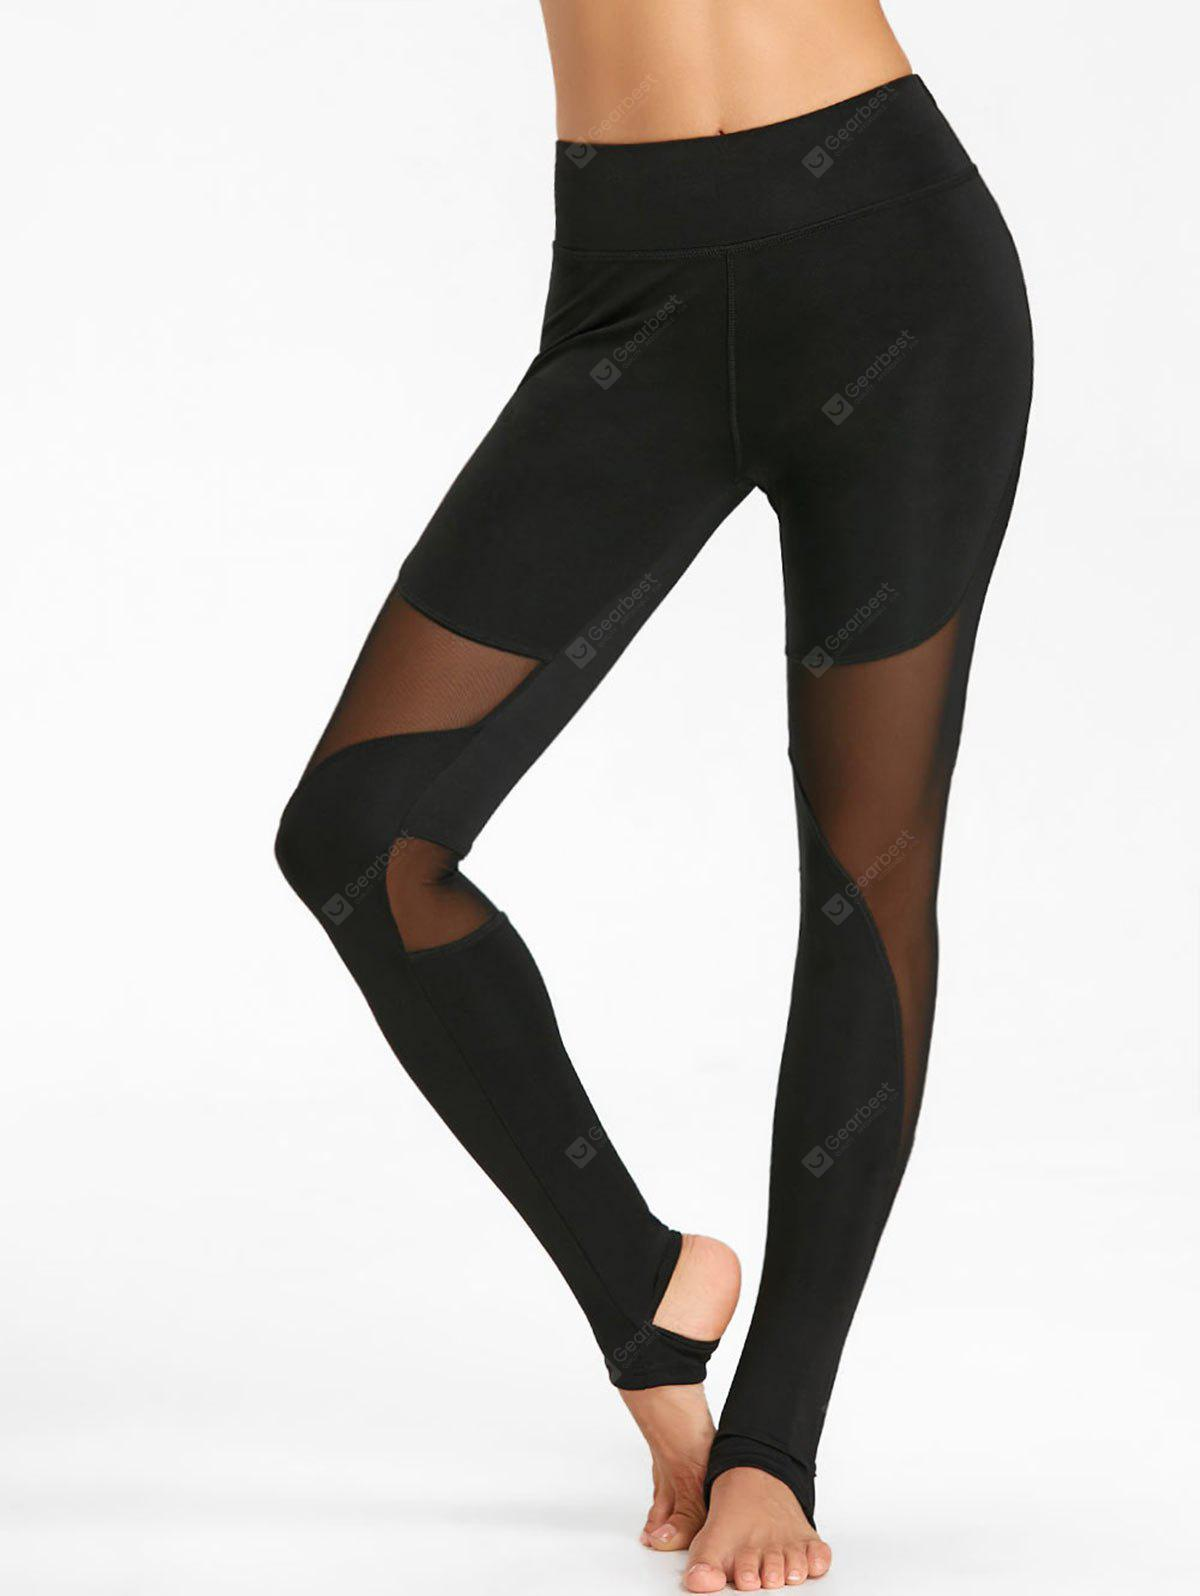 Sheer Workout Stirrup Leggings with Mesh Panel